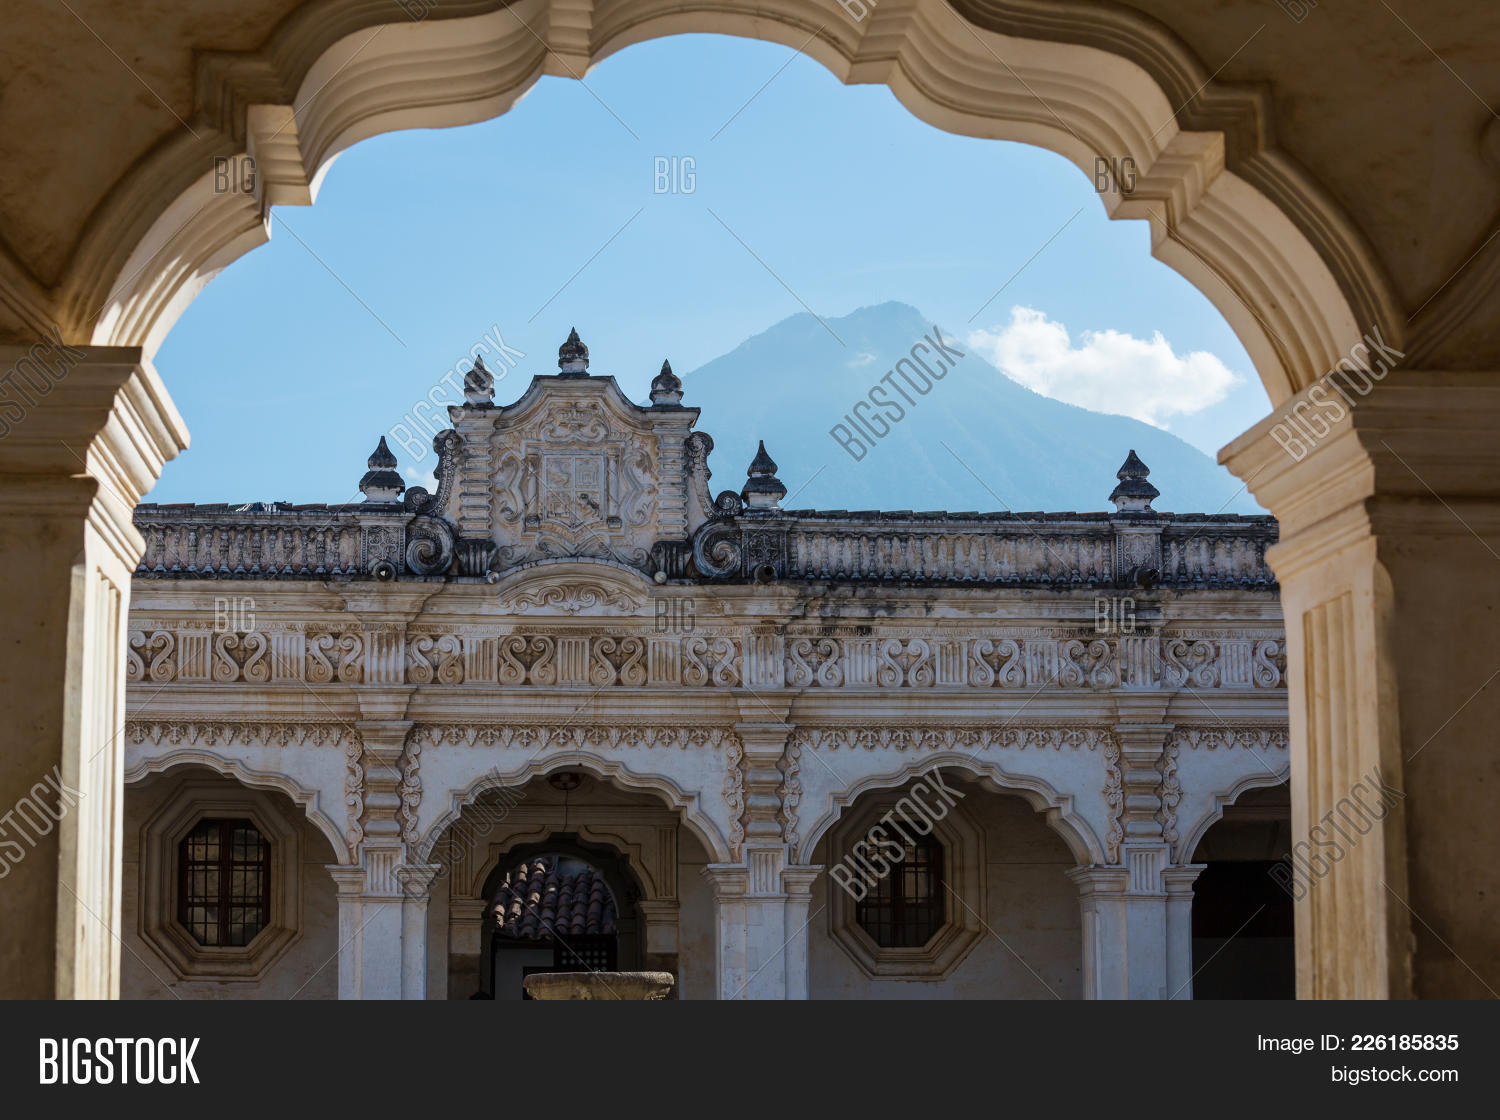 Heritage ancient colonial architecture powerpoint template your text toneelgroepblik Image collections